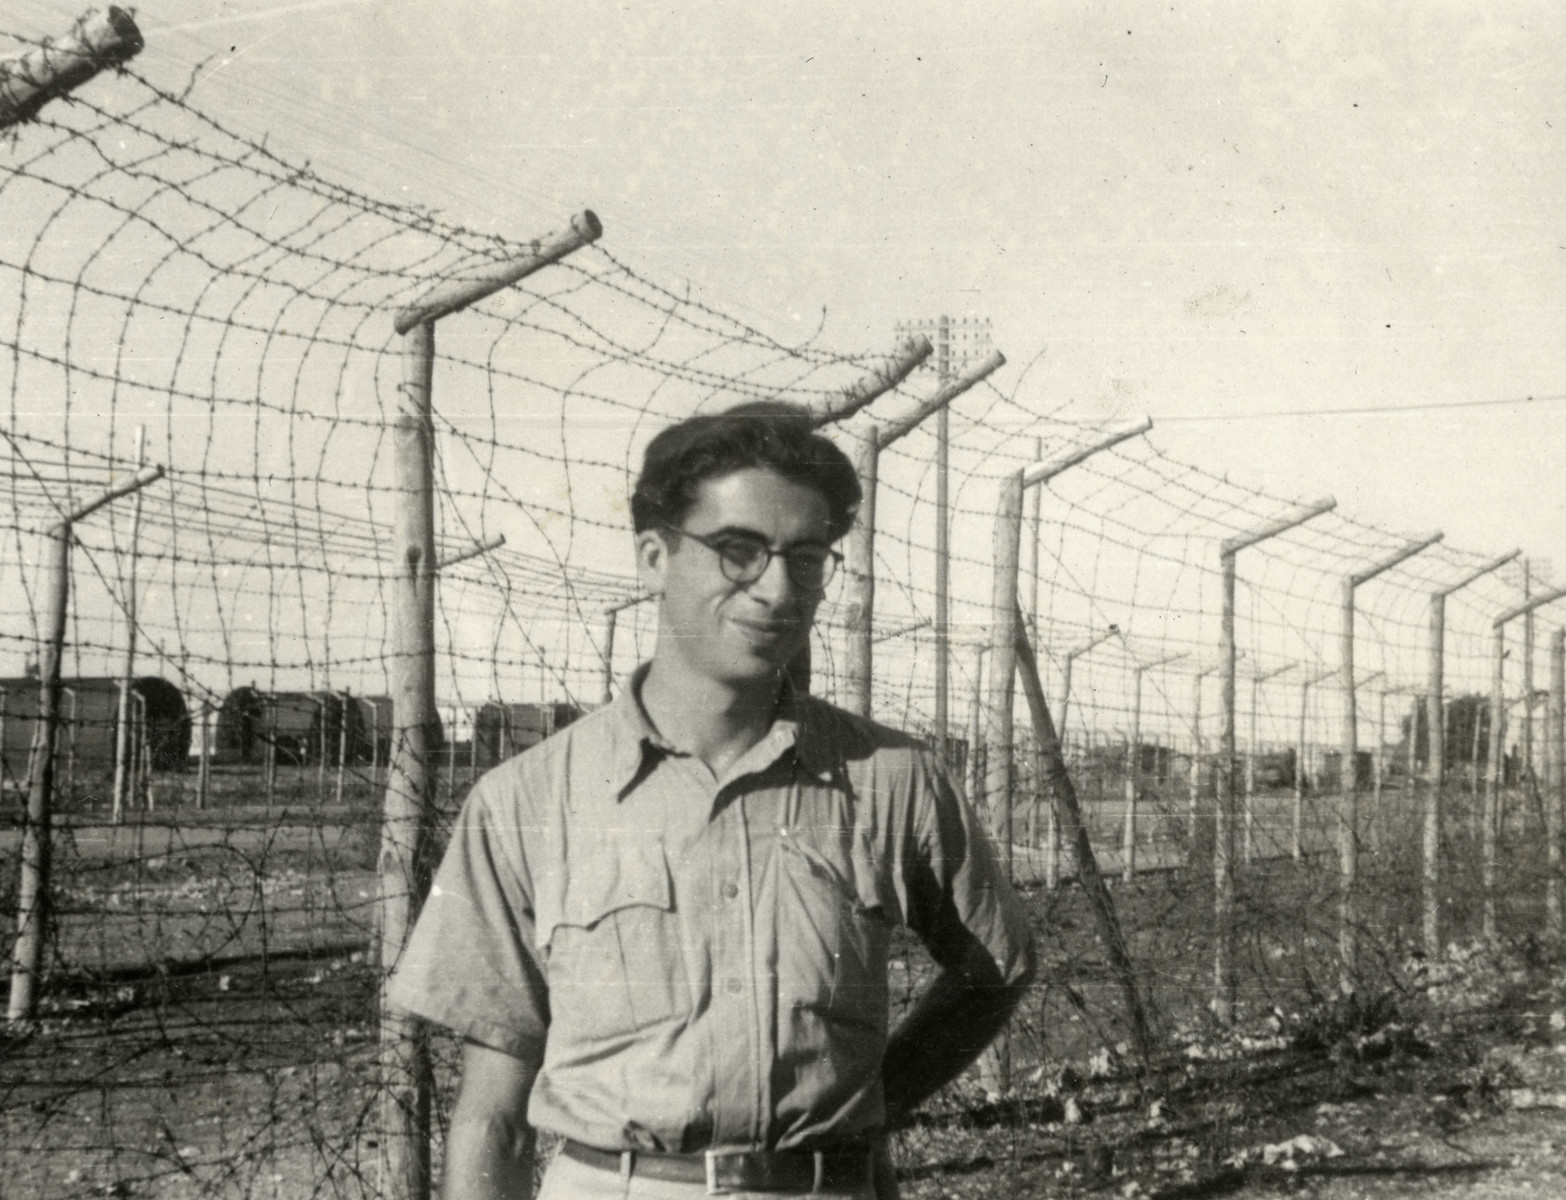 Dario Navarra poses in front of the barbed wire fence in the refugee camp in Cyprus.